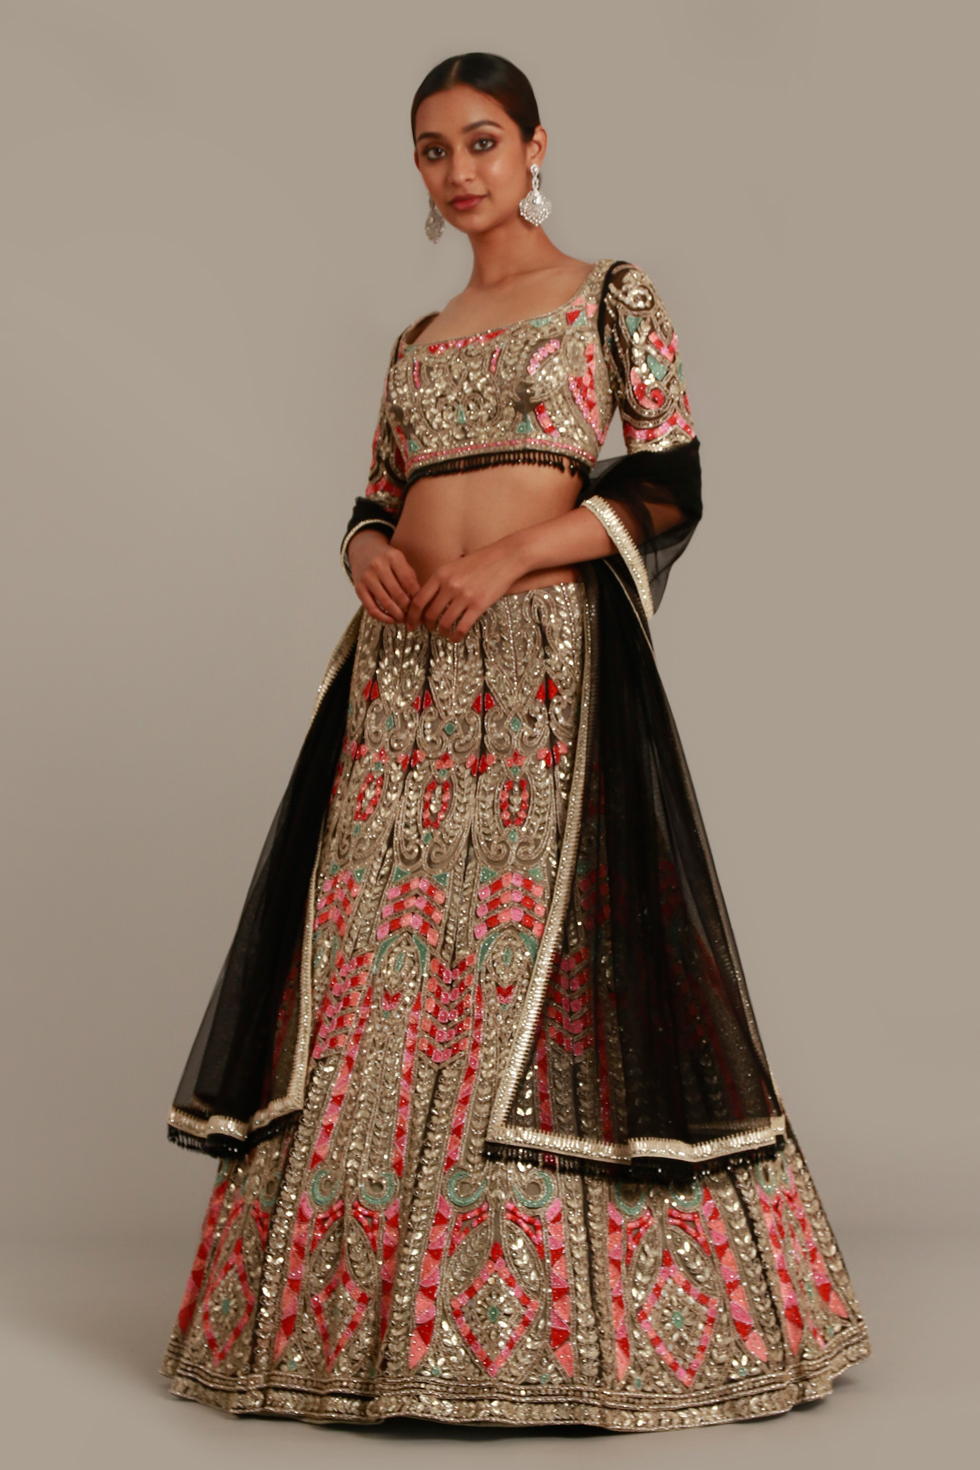 Raven black lehenga set with multi coloured contrast embroidery and matching dupatta with silver and gota work detailing